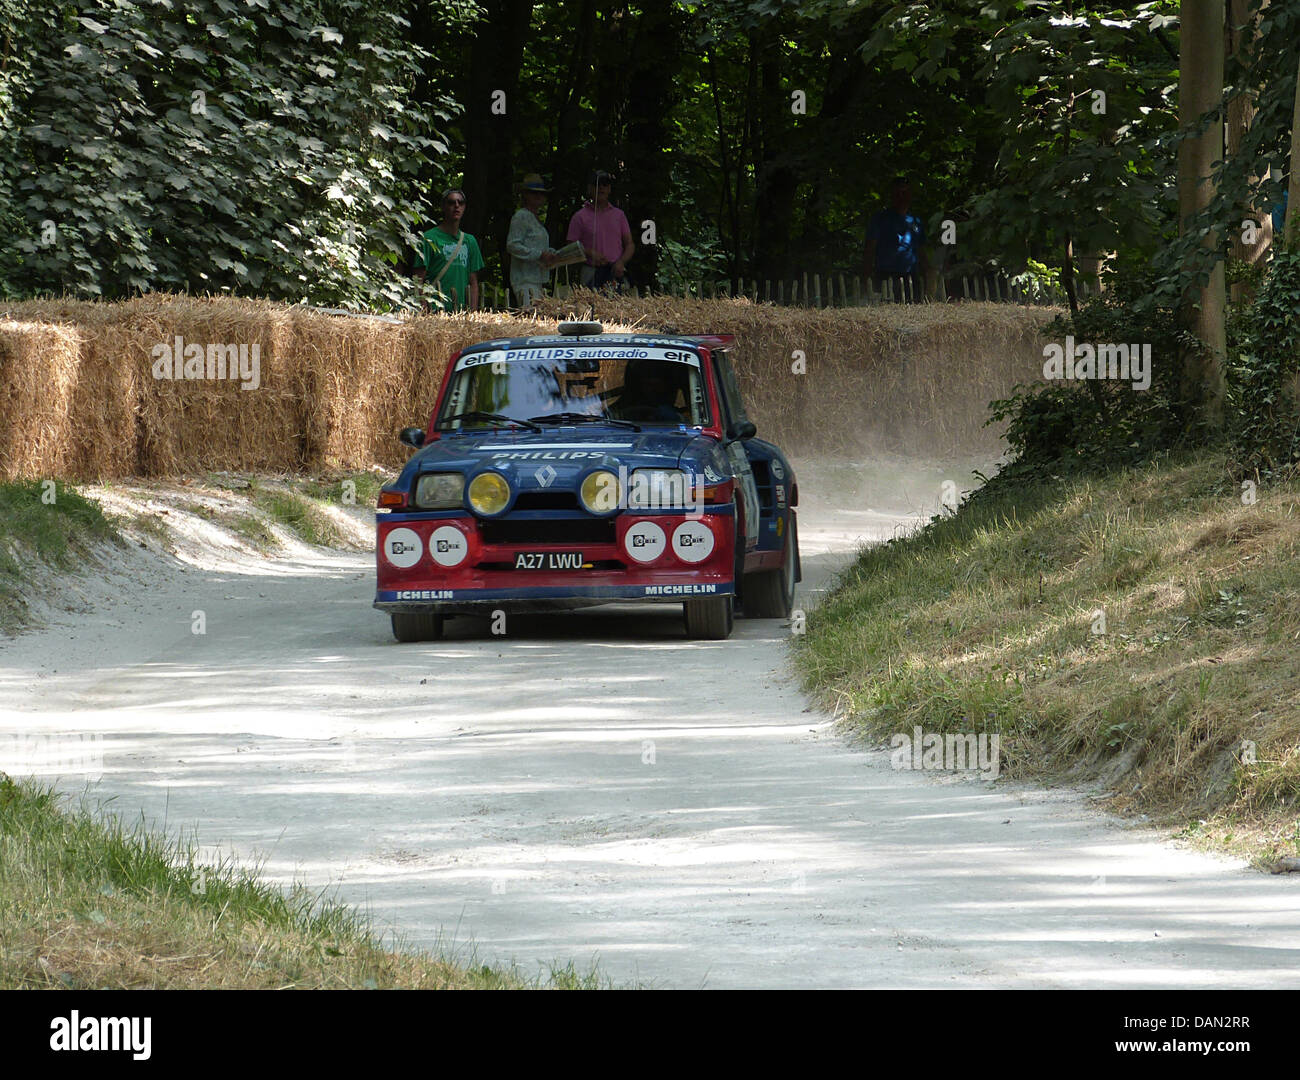 Renault 5 rally goodwood festival of speed 2013 - Stock Image